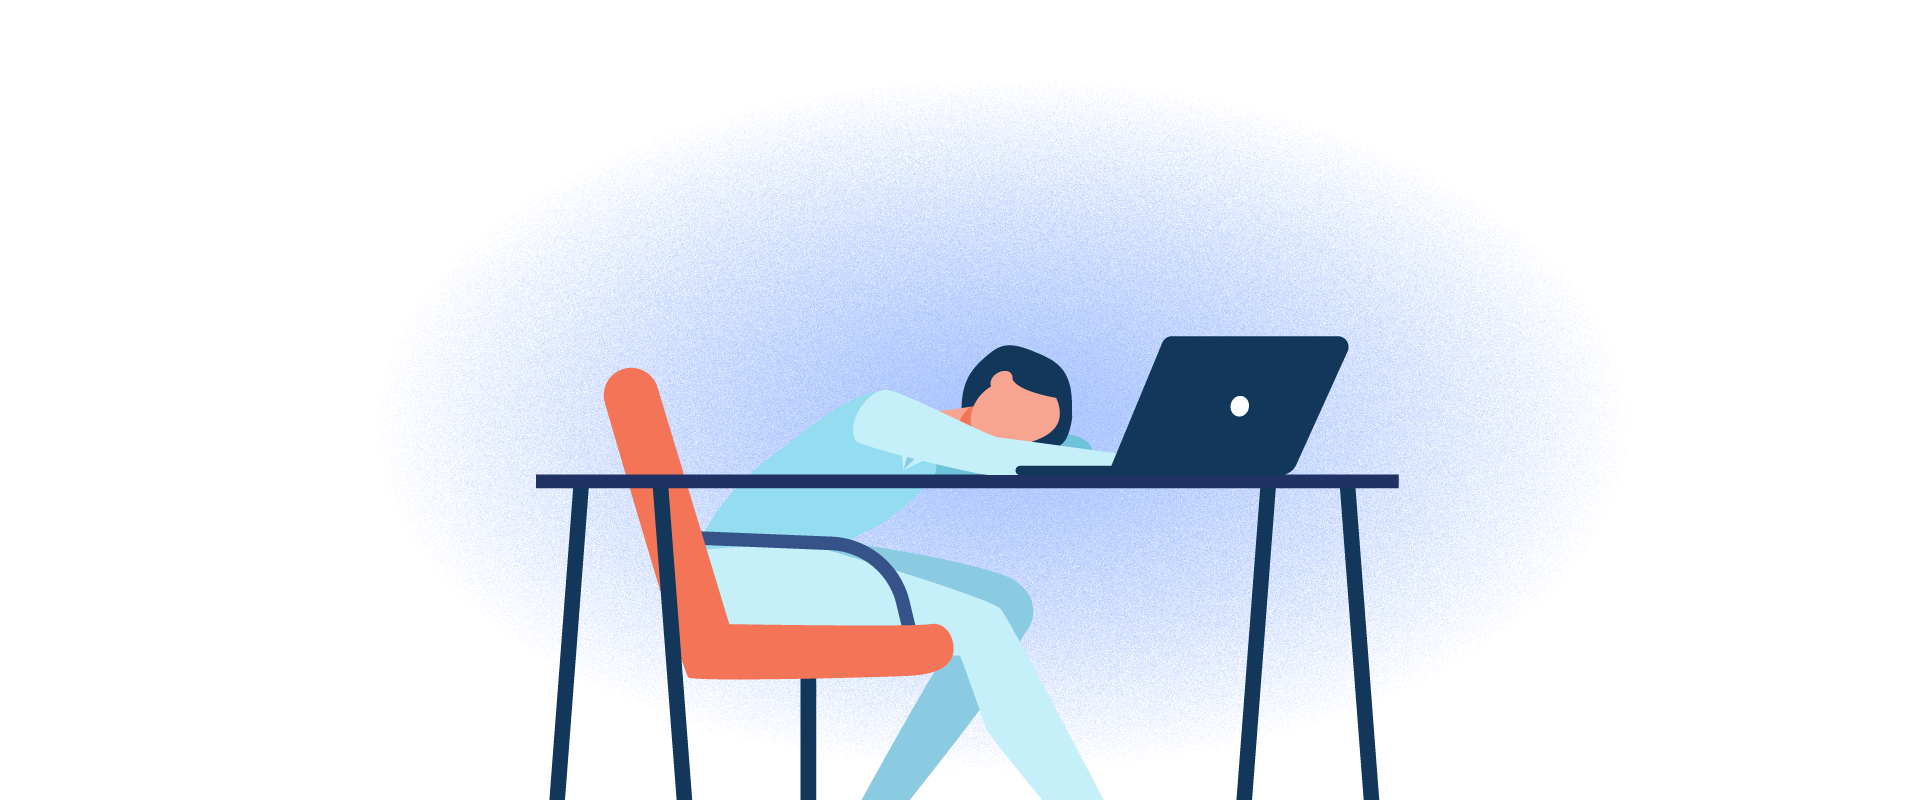 Okay, so you don't work in one of the Fortune 500 companies. Maybe your office is not exactly plush. Or, it could be that you aren't particularly fond of your job. But you have to face reality and it is what it is.Don't wallow in self-pity or moan about your job that would result in wasted time. Think about the work related perks or any positive side. Write these down and put them in front of you.